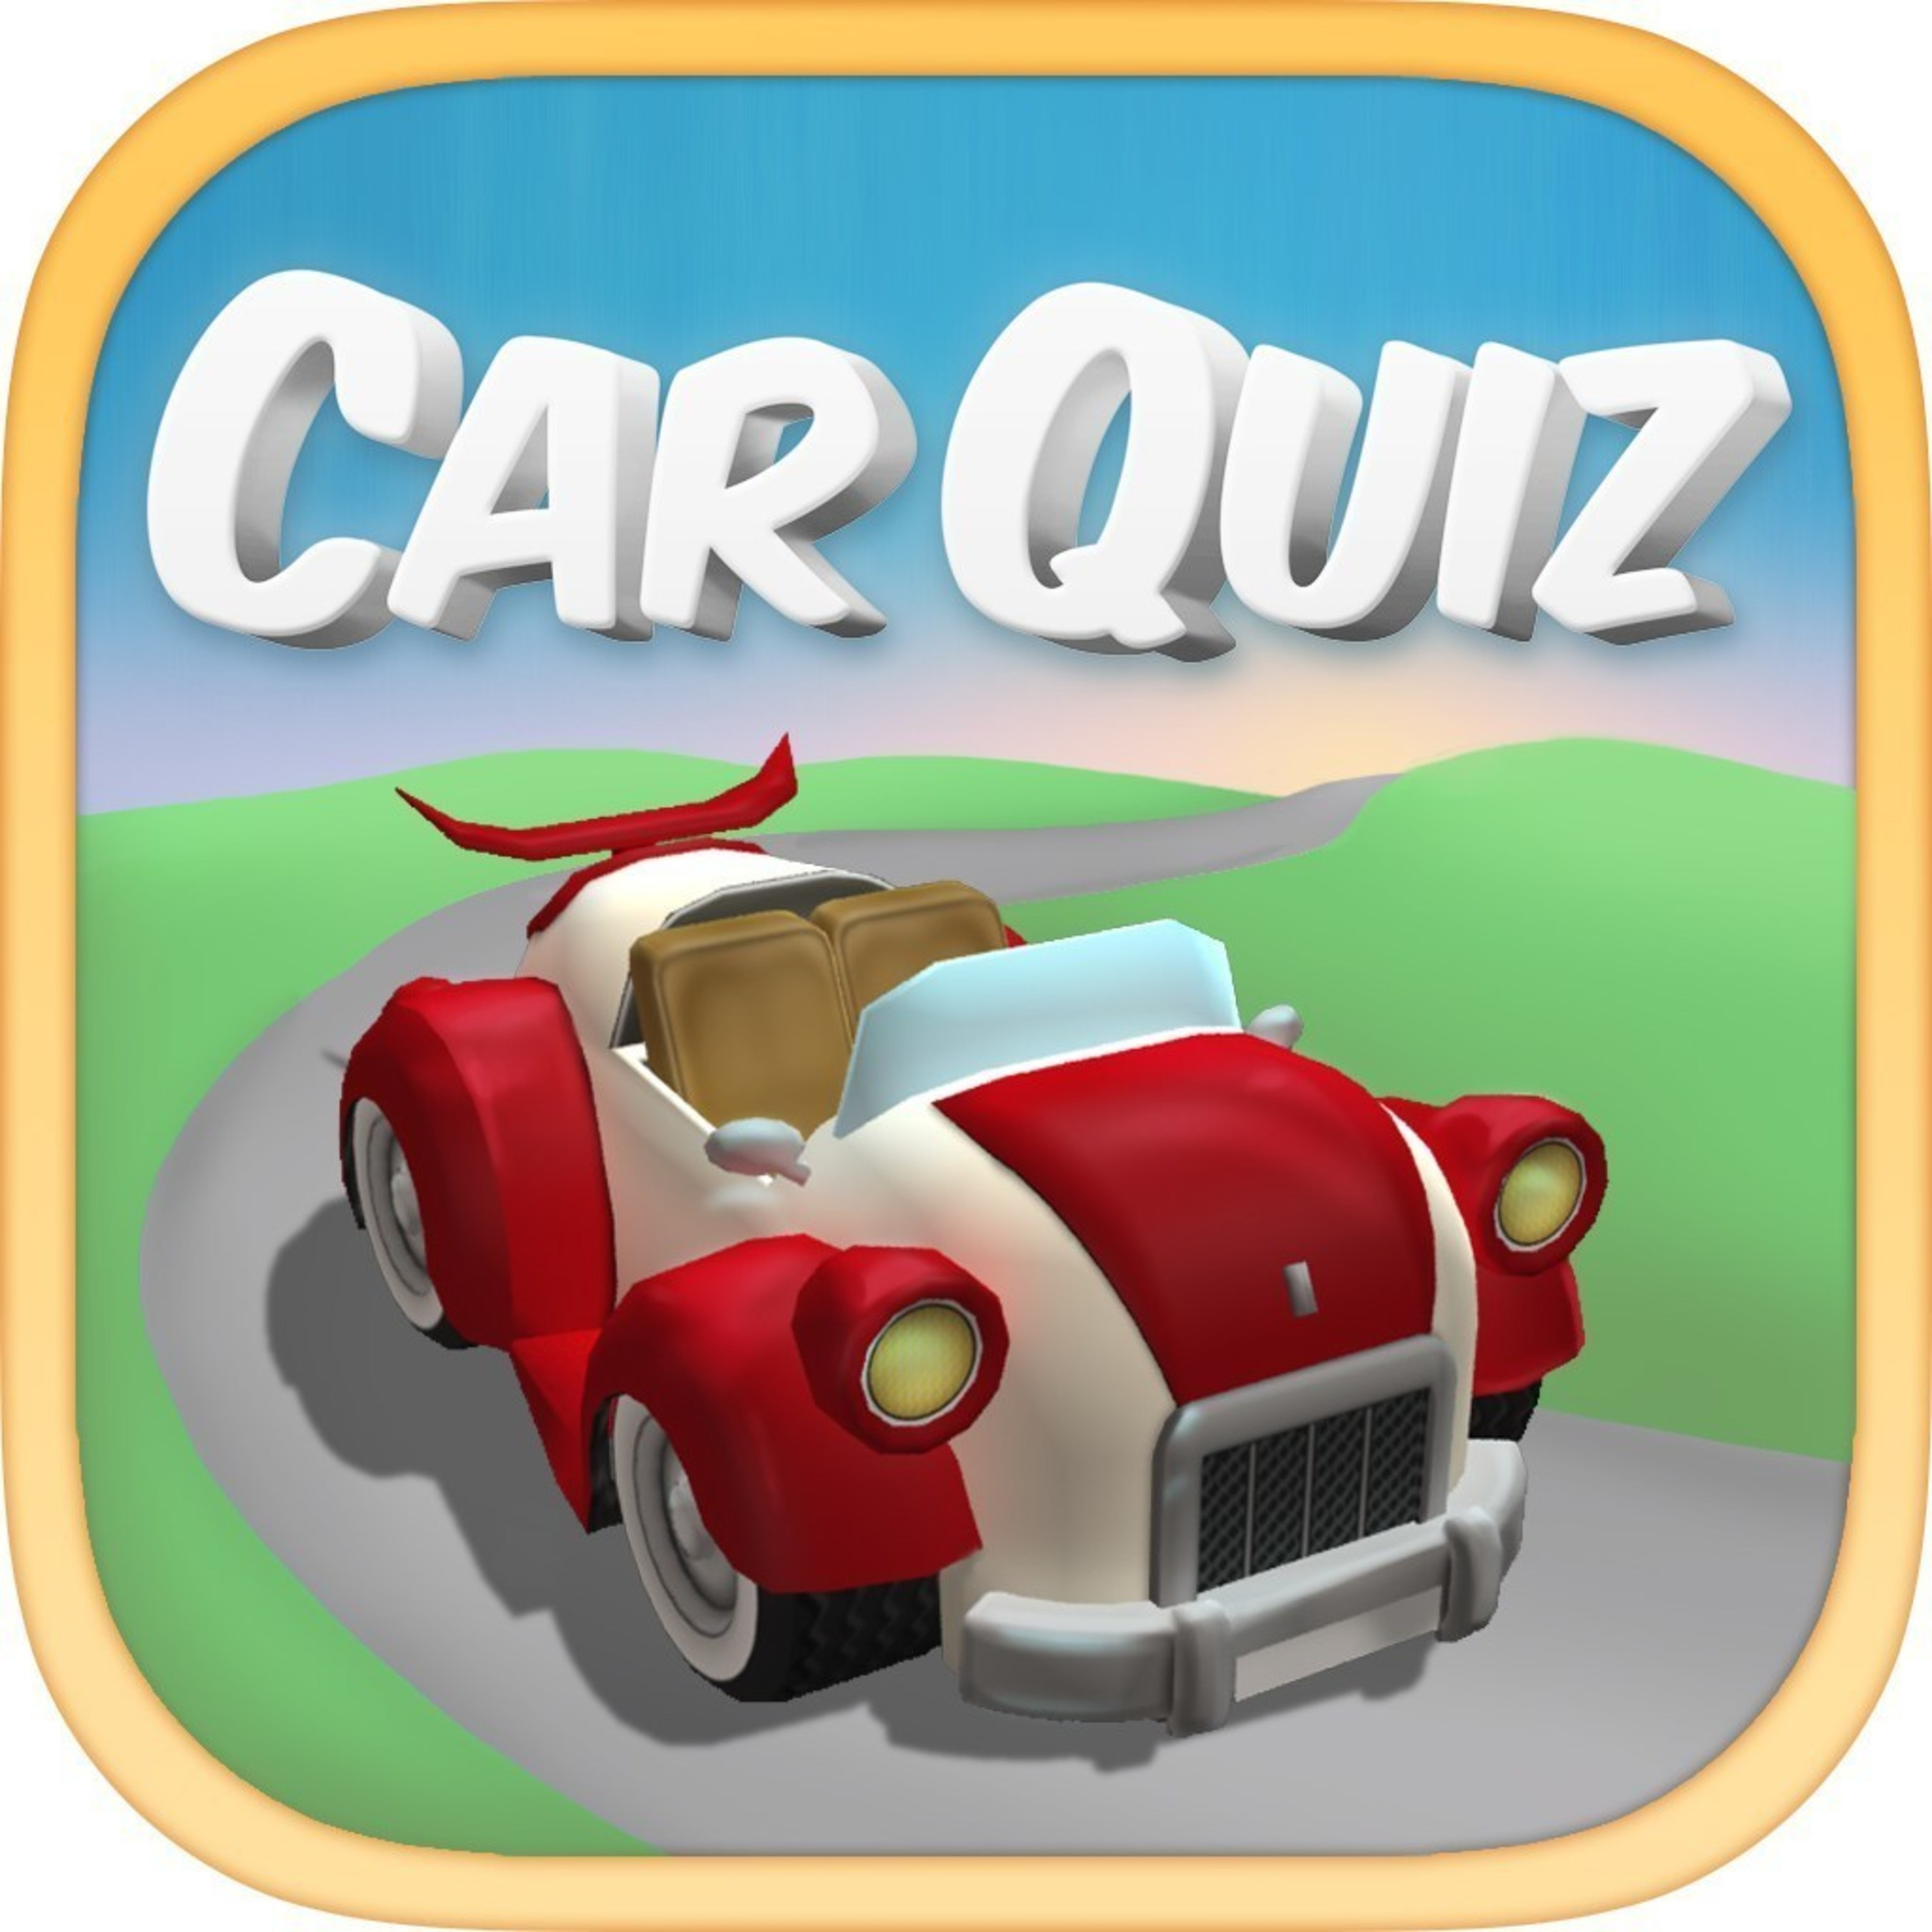 CarQuiz Math Game Released on the App Store